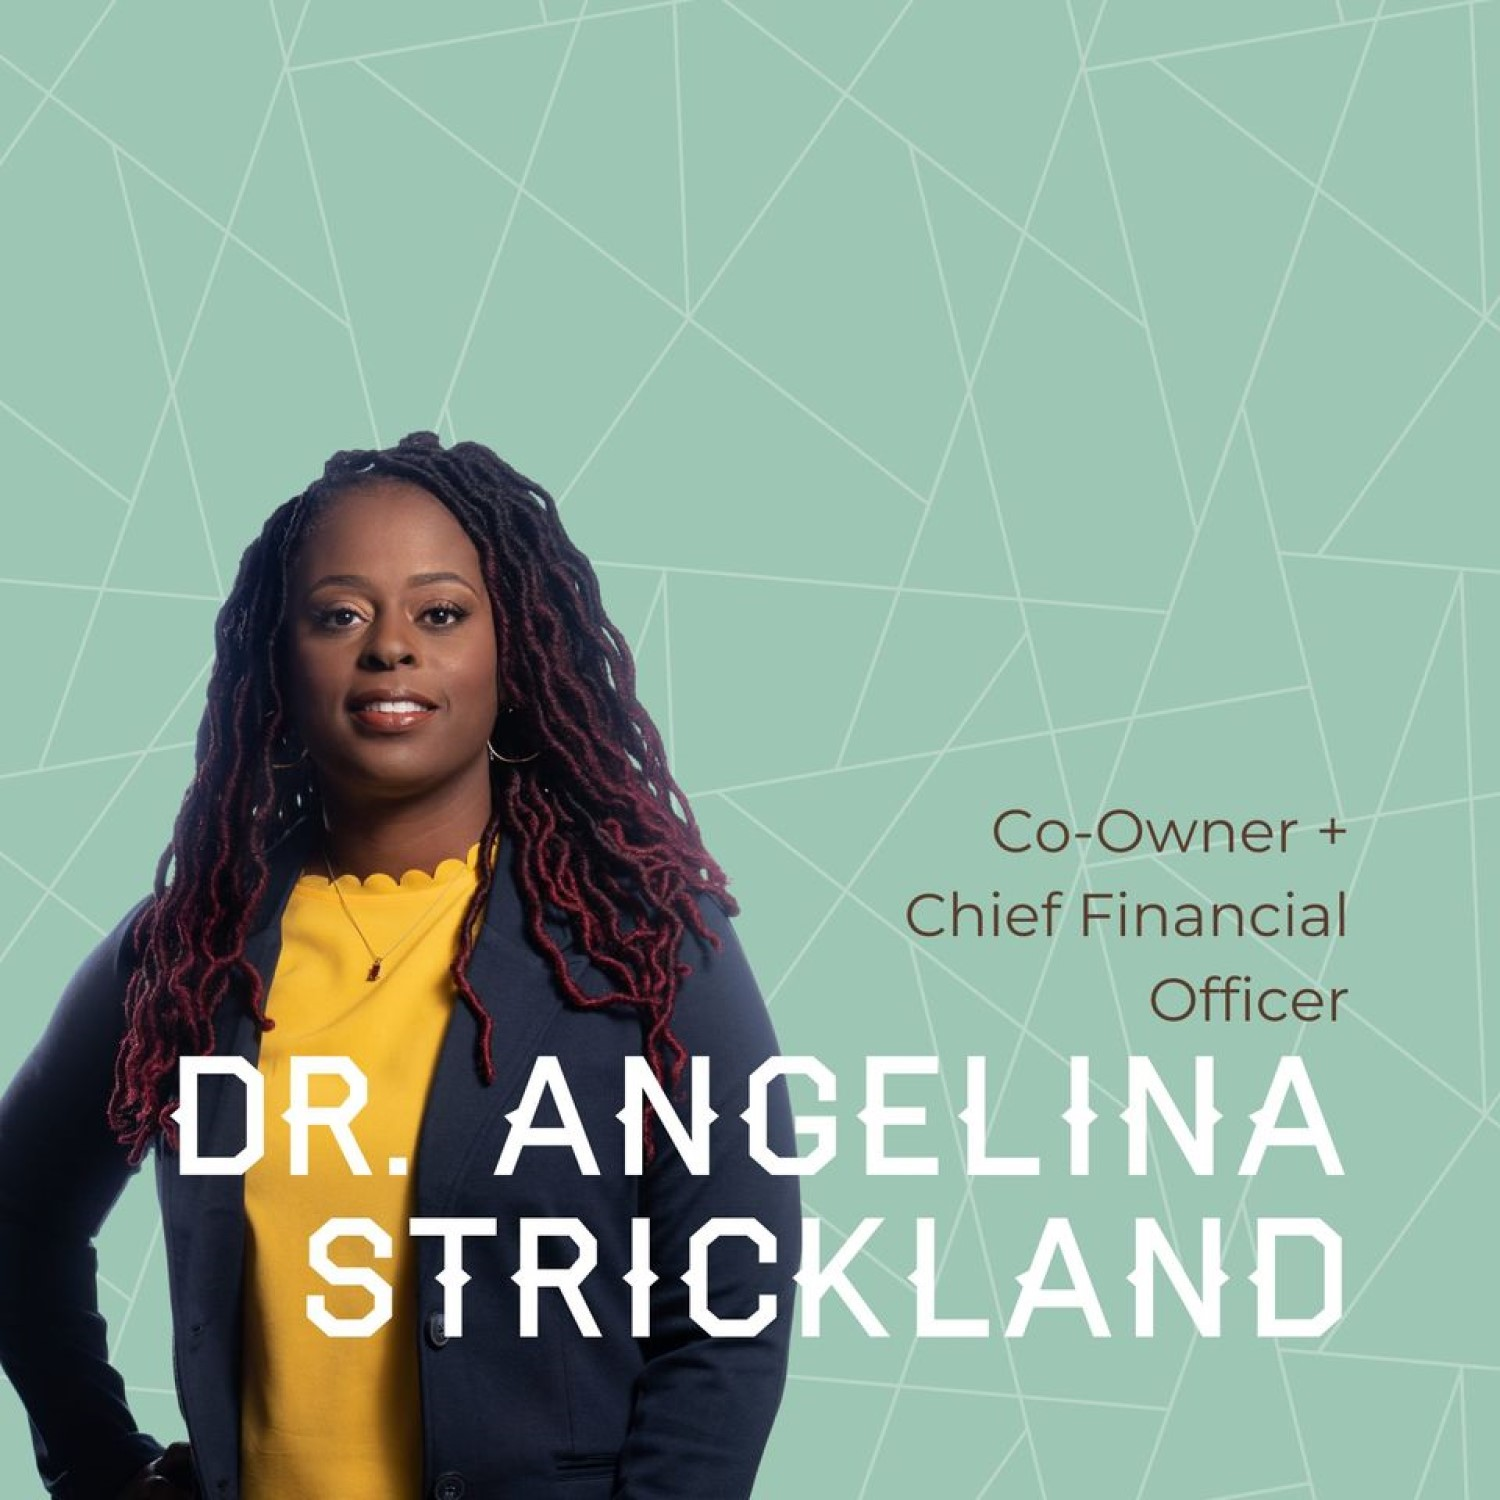 Angelina Strickland, CFO & Co-Owner of Bespoke Ventures and Investments, LLC DBA Bespoke Campgrounds